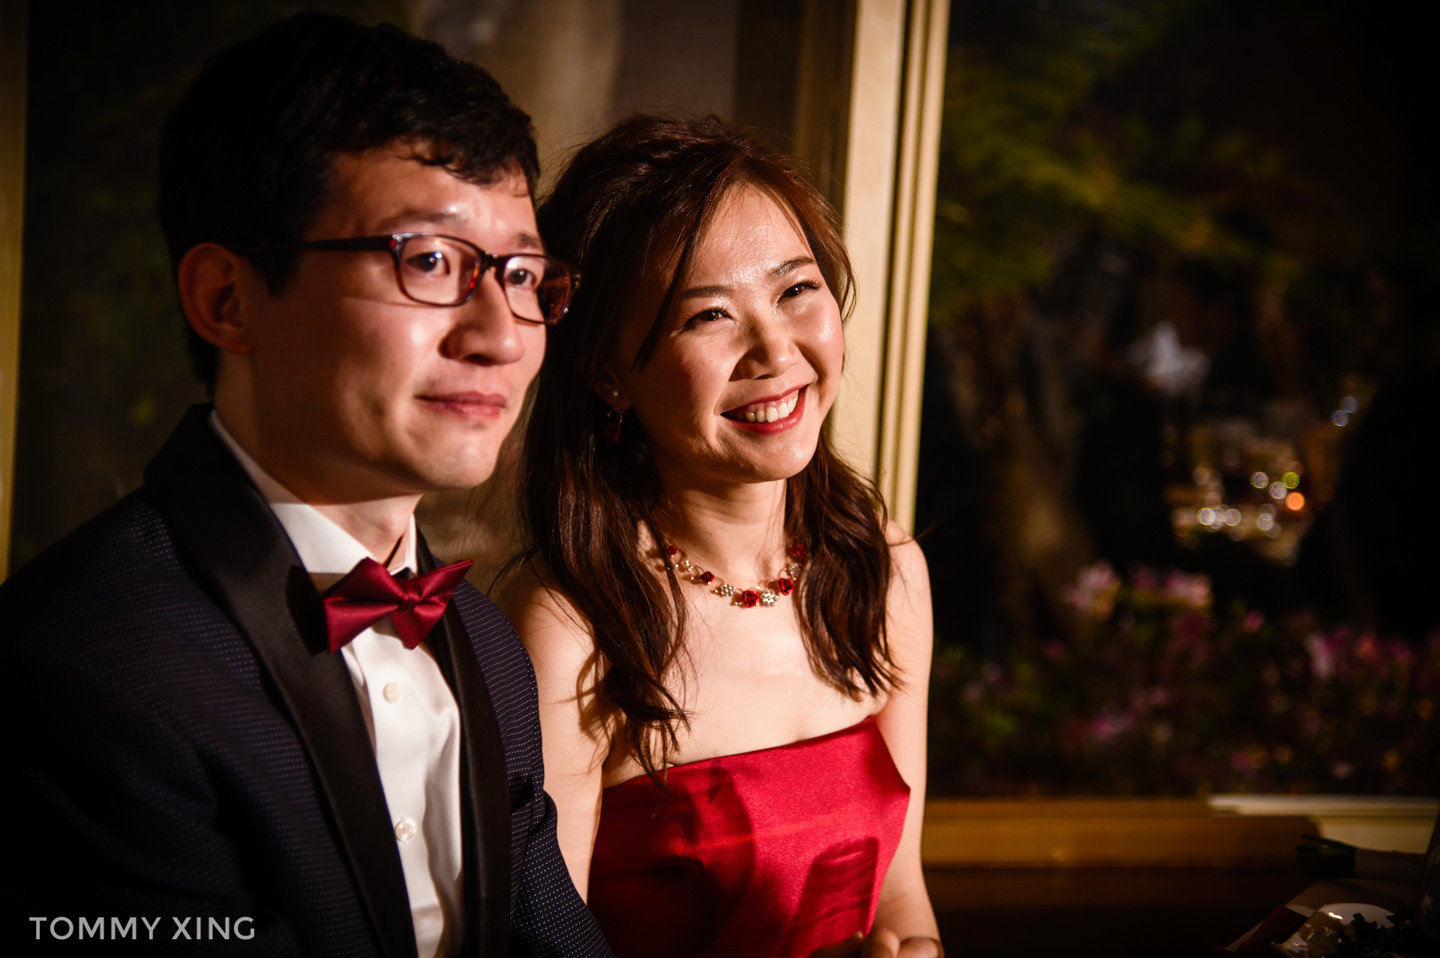 Los Angeles Wedding Photographer 洛杉矶婚礼婚纱摄影师 Tommy Xing-236.JPG